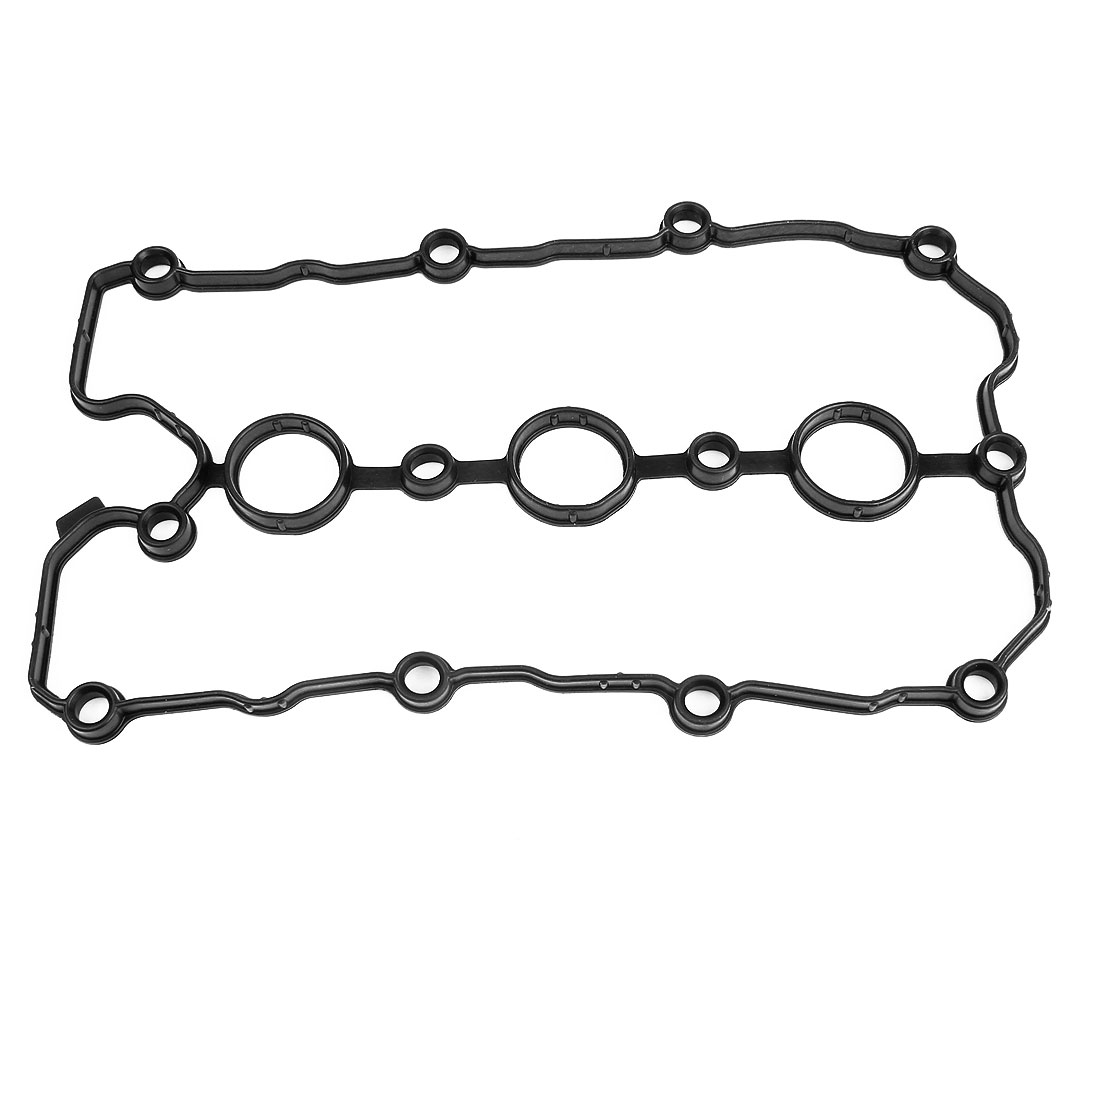 Automotive Black Rubber Engine Valve Cover Gasket 06E103484G